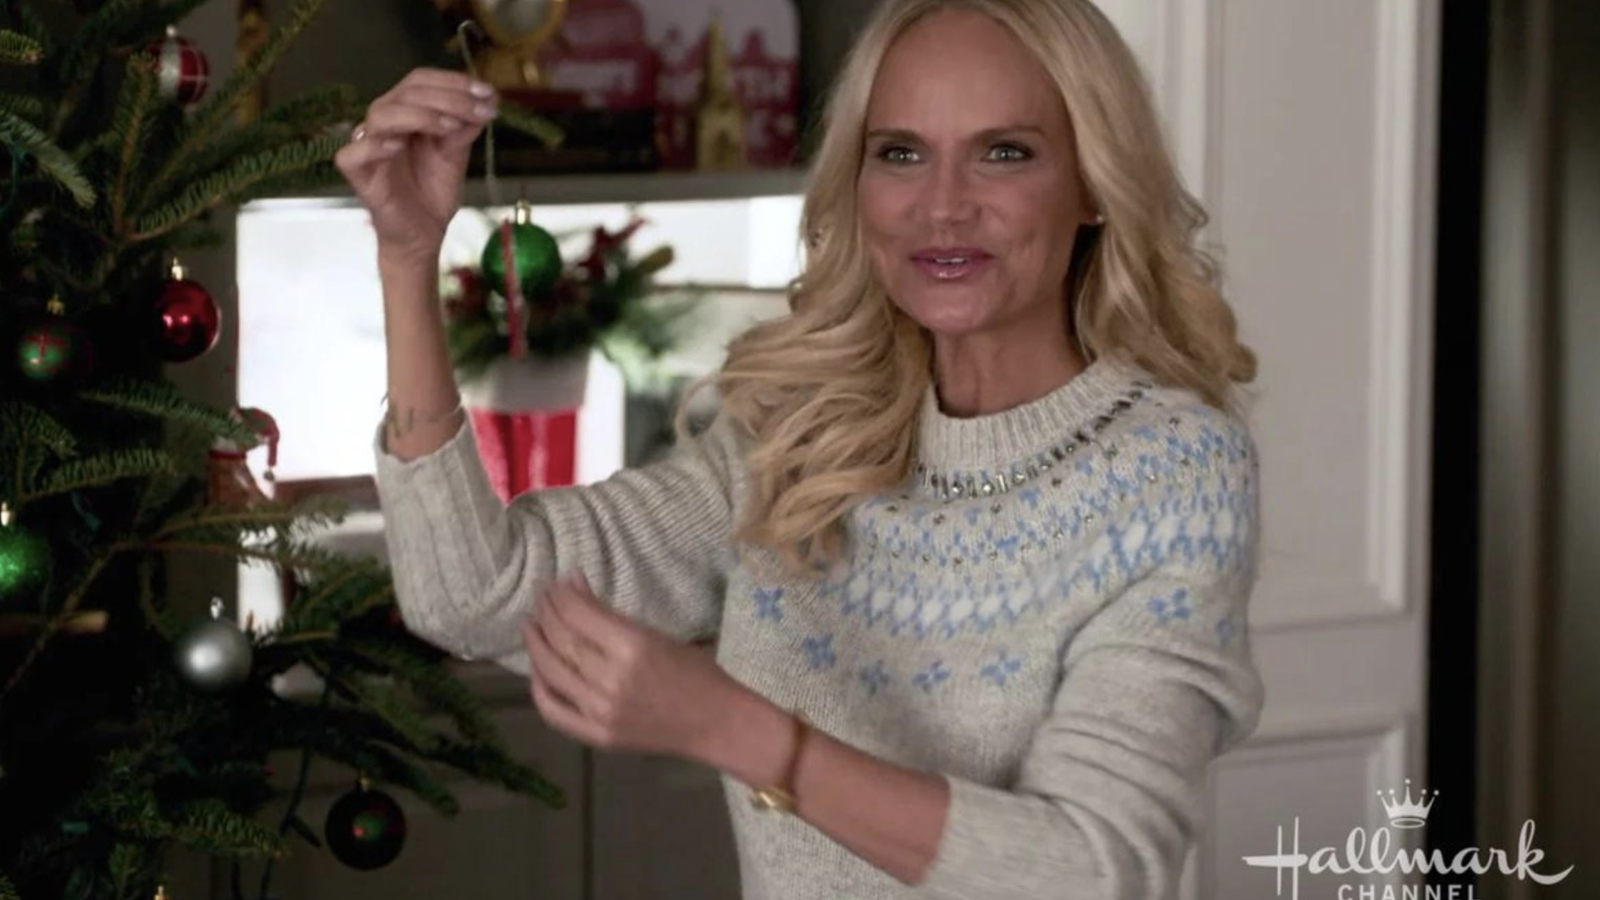 Hallmark Posts Its Star-Studded Christmas Movie Lineup, All of Which I Will Watch